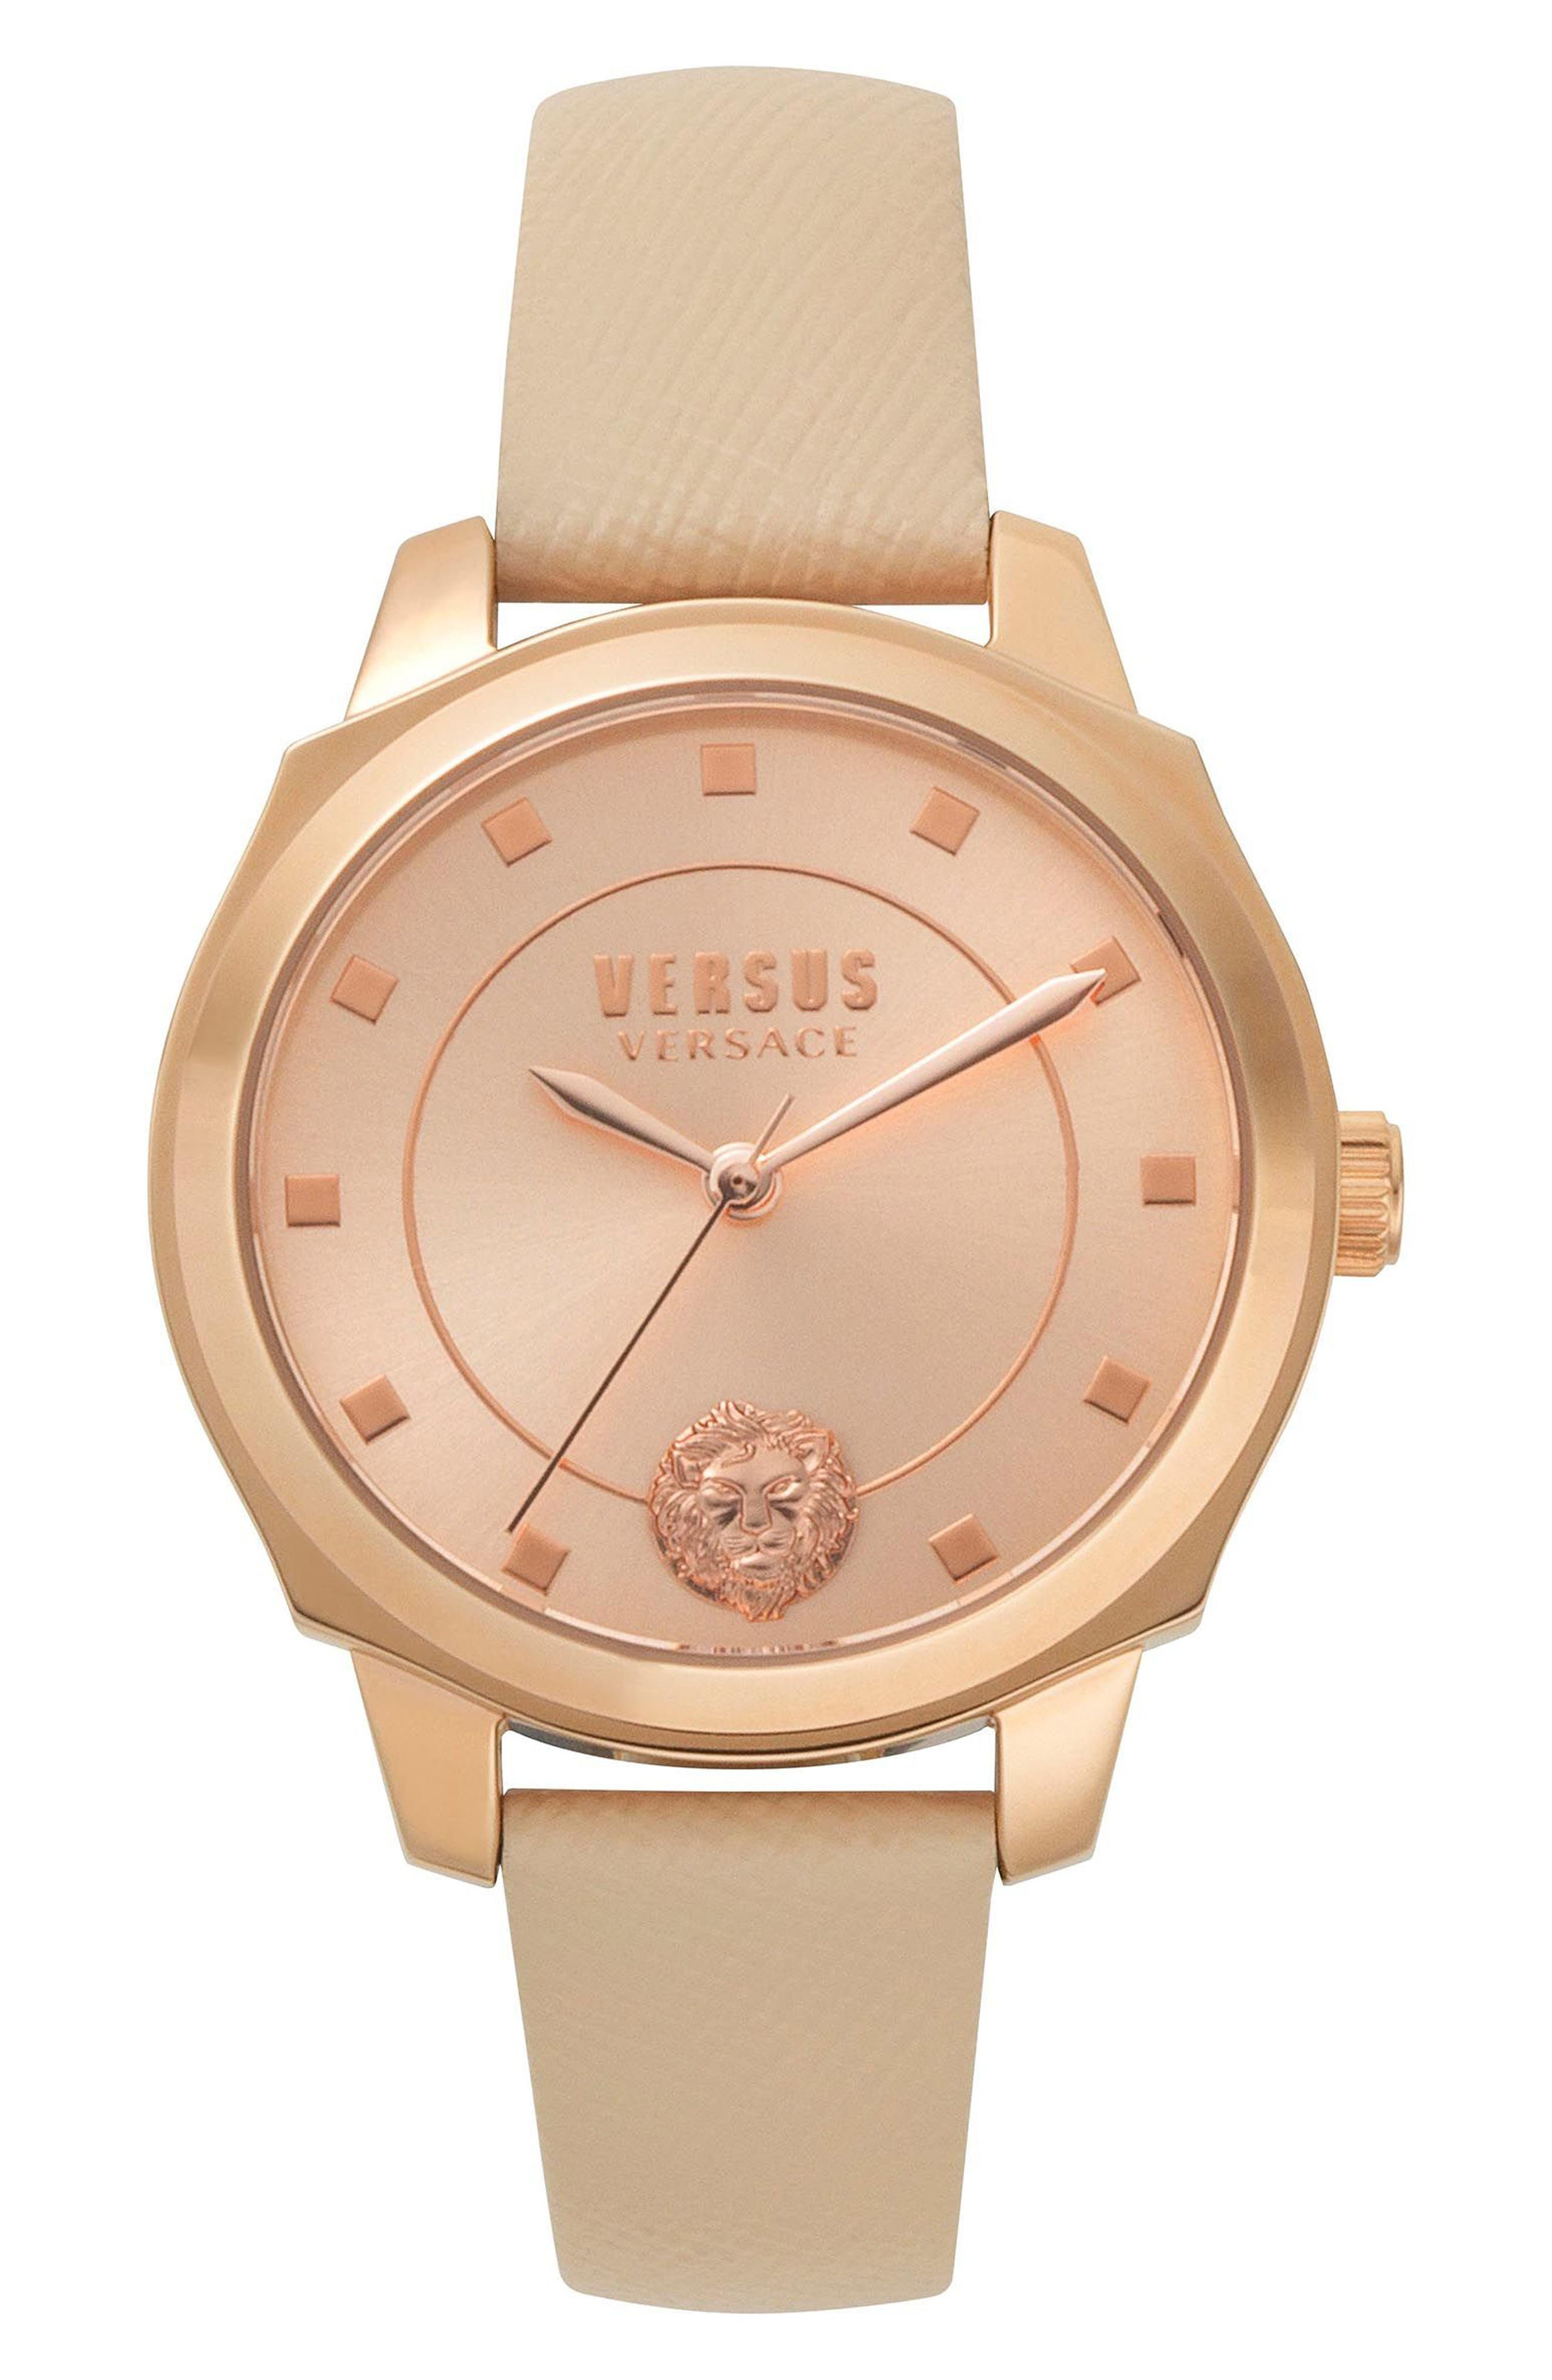 VERSUS by Versace Chelsea Leather Strap Watch, 34mm,                             Main thumbnail 1, color,                             Tan/ Rose Gold